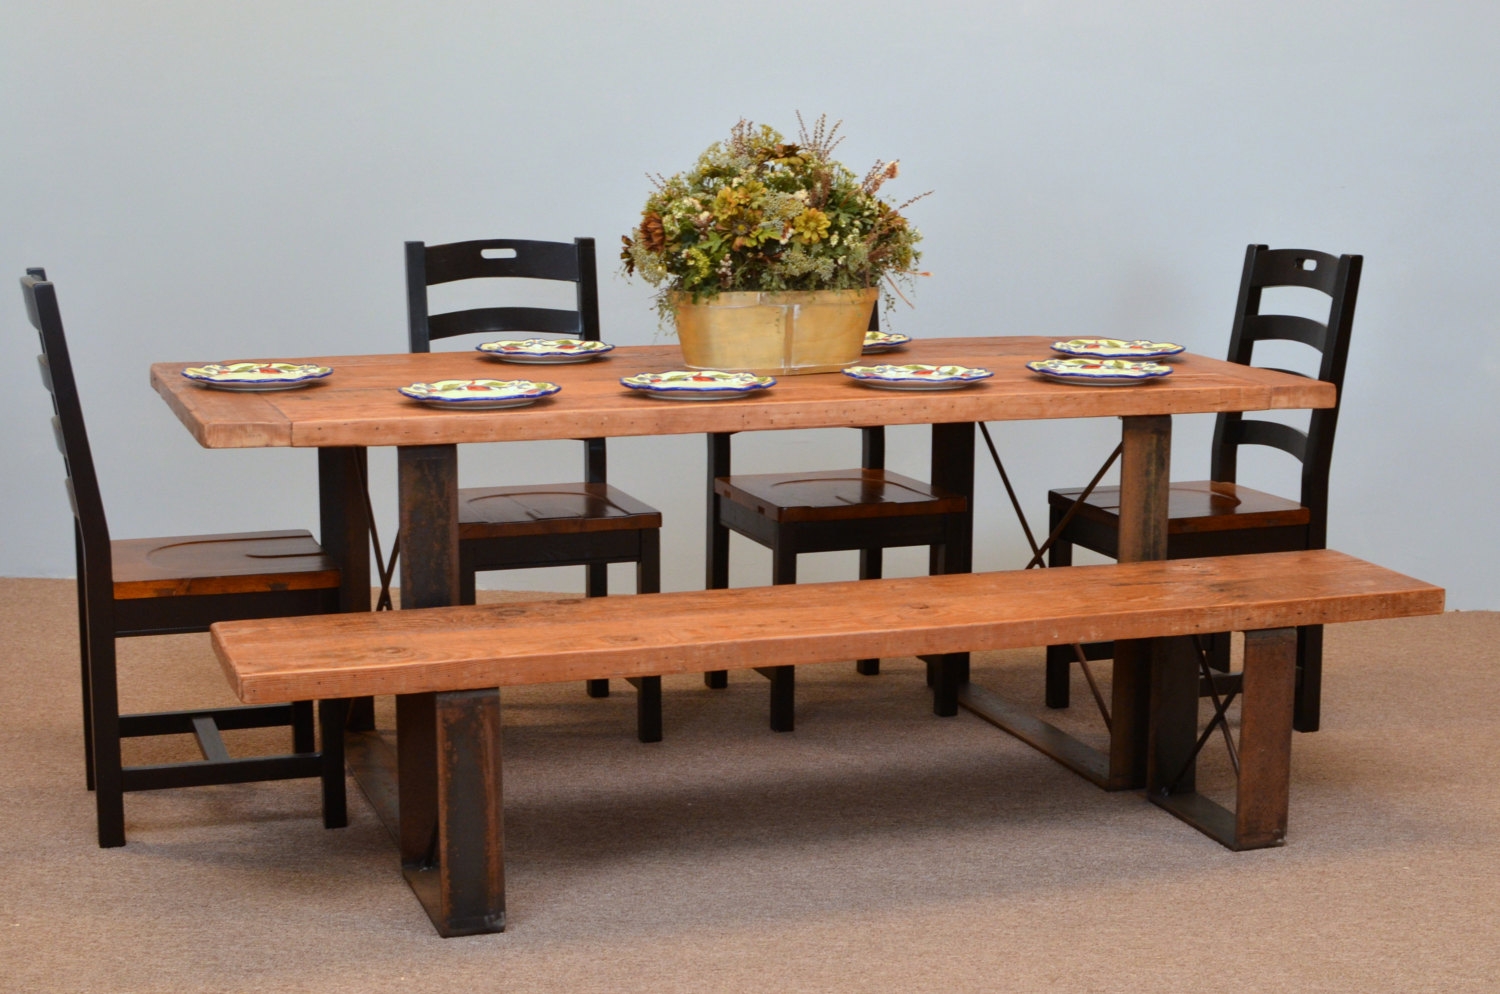 22 country style diy projects from reclaimed wood style for Country style table